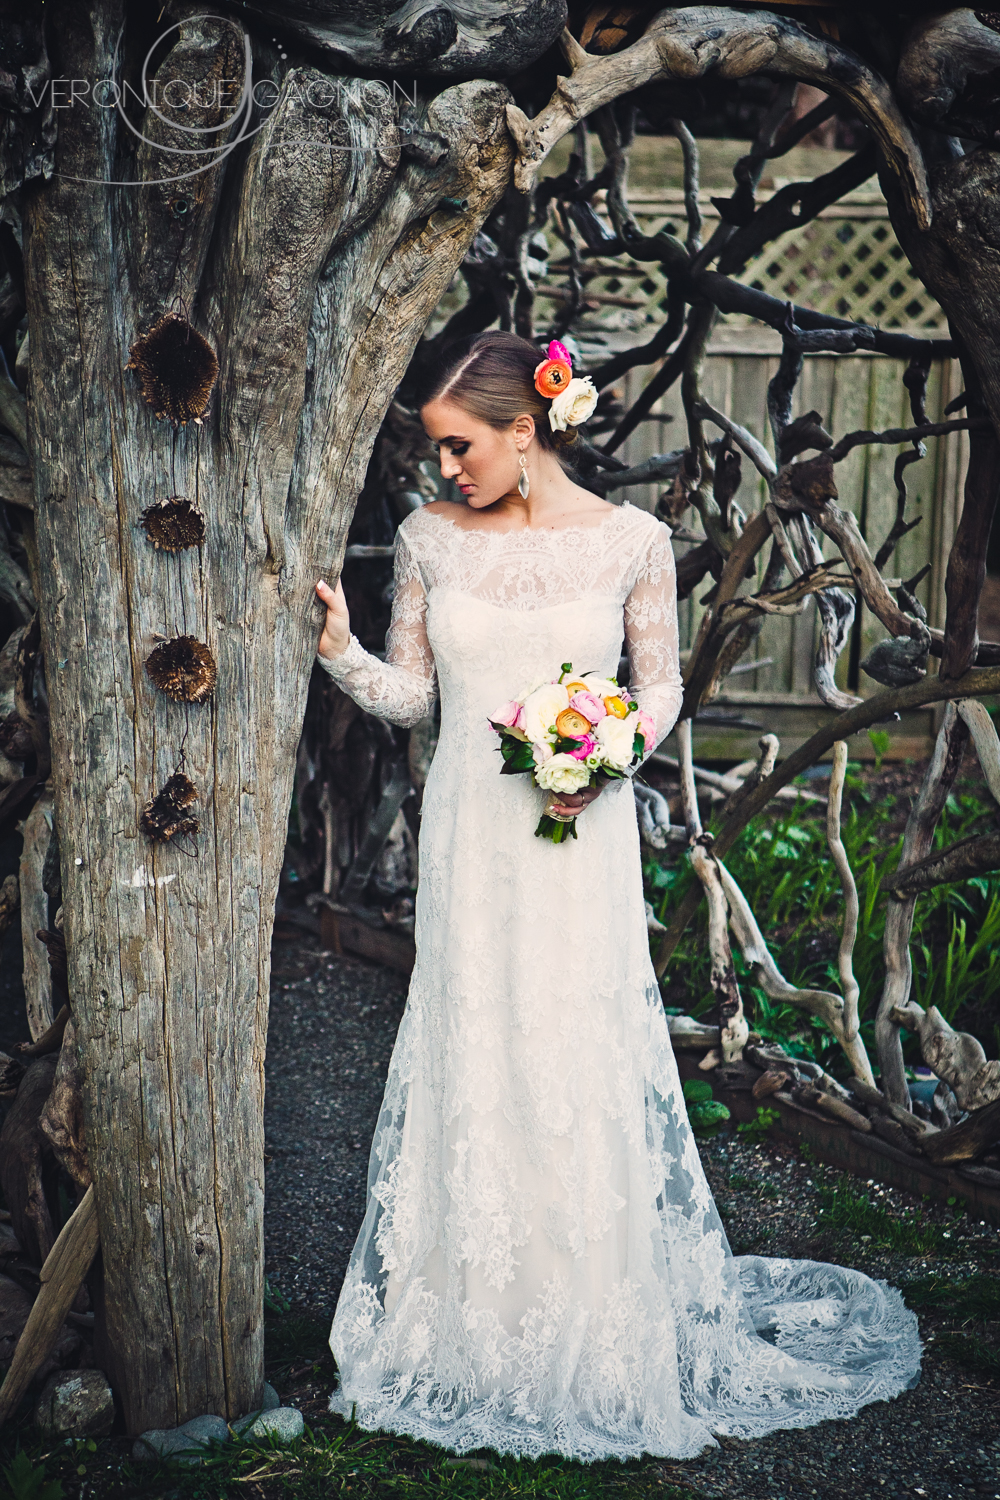 West coast wedding bridal style